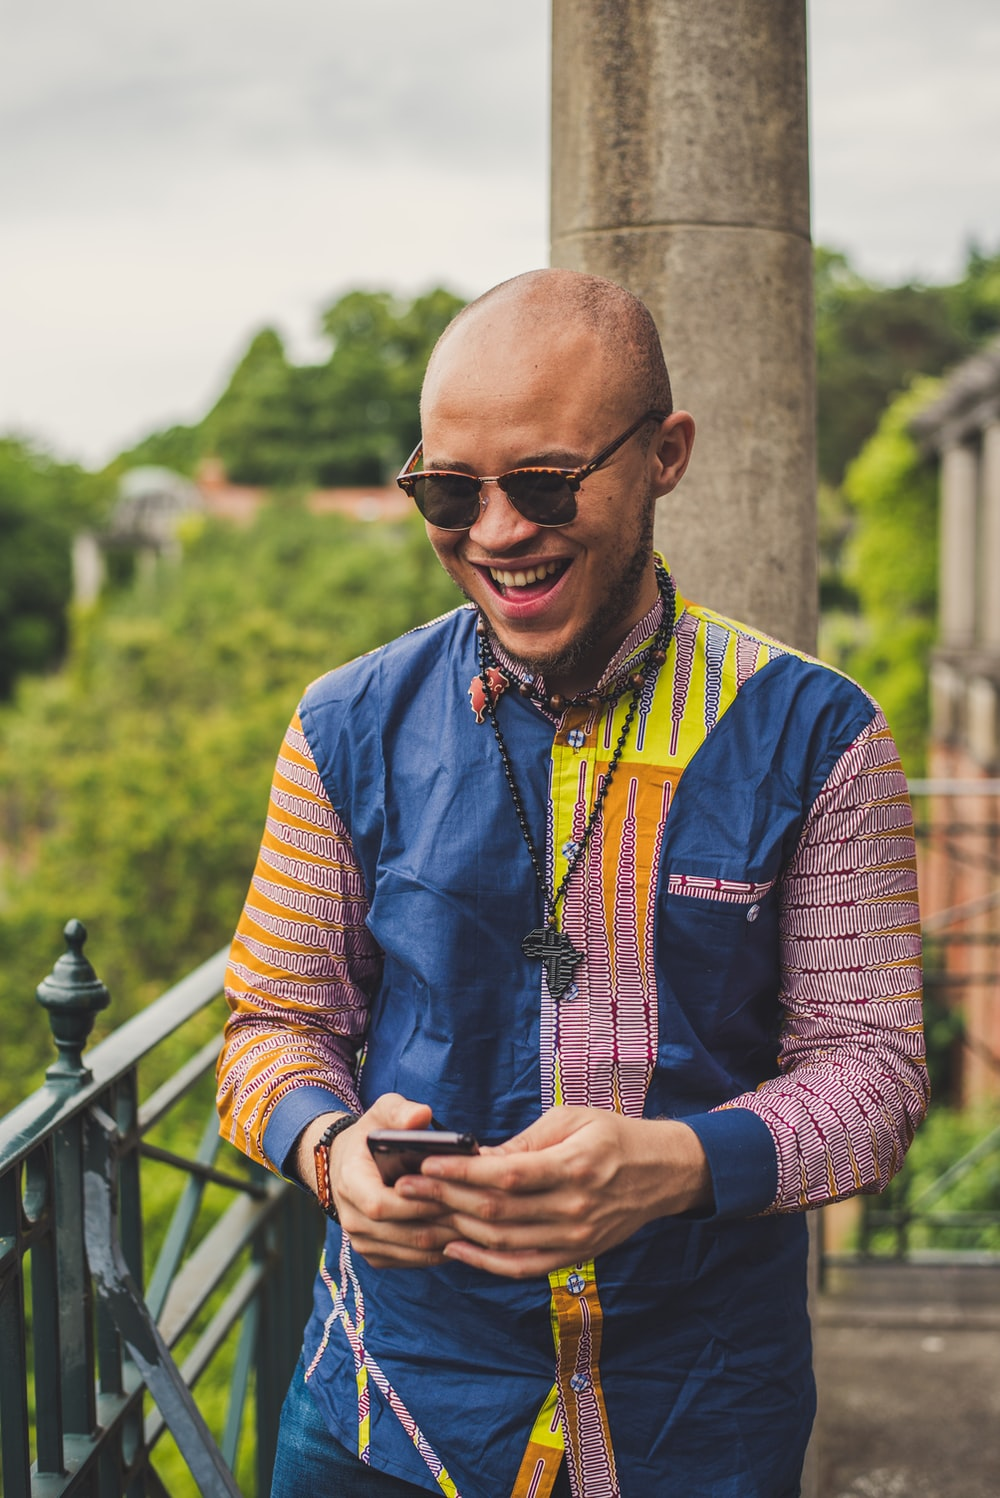 smiling man in multicolored dress shirt and brown sunglasses